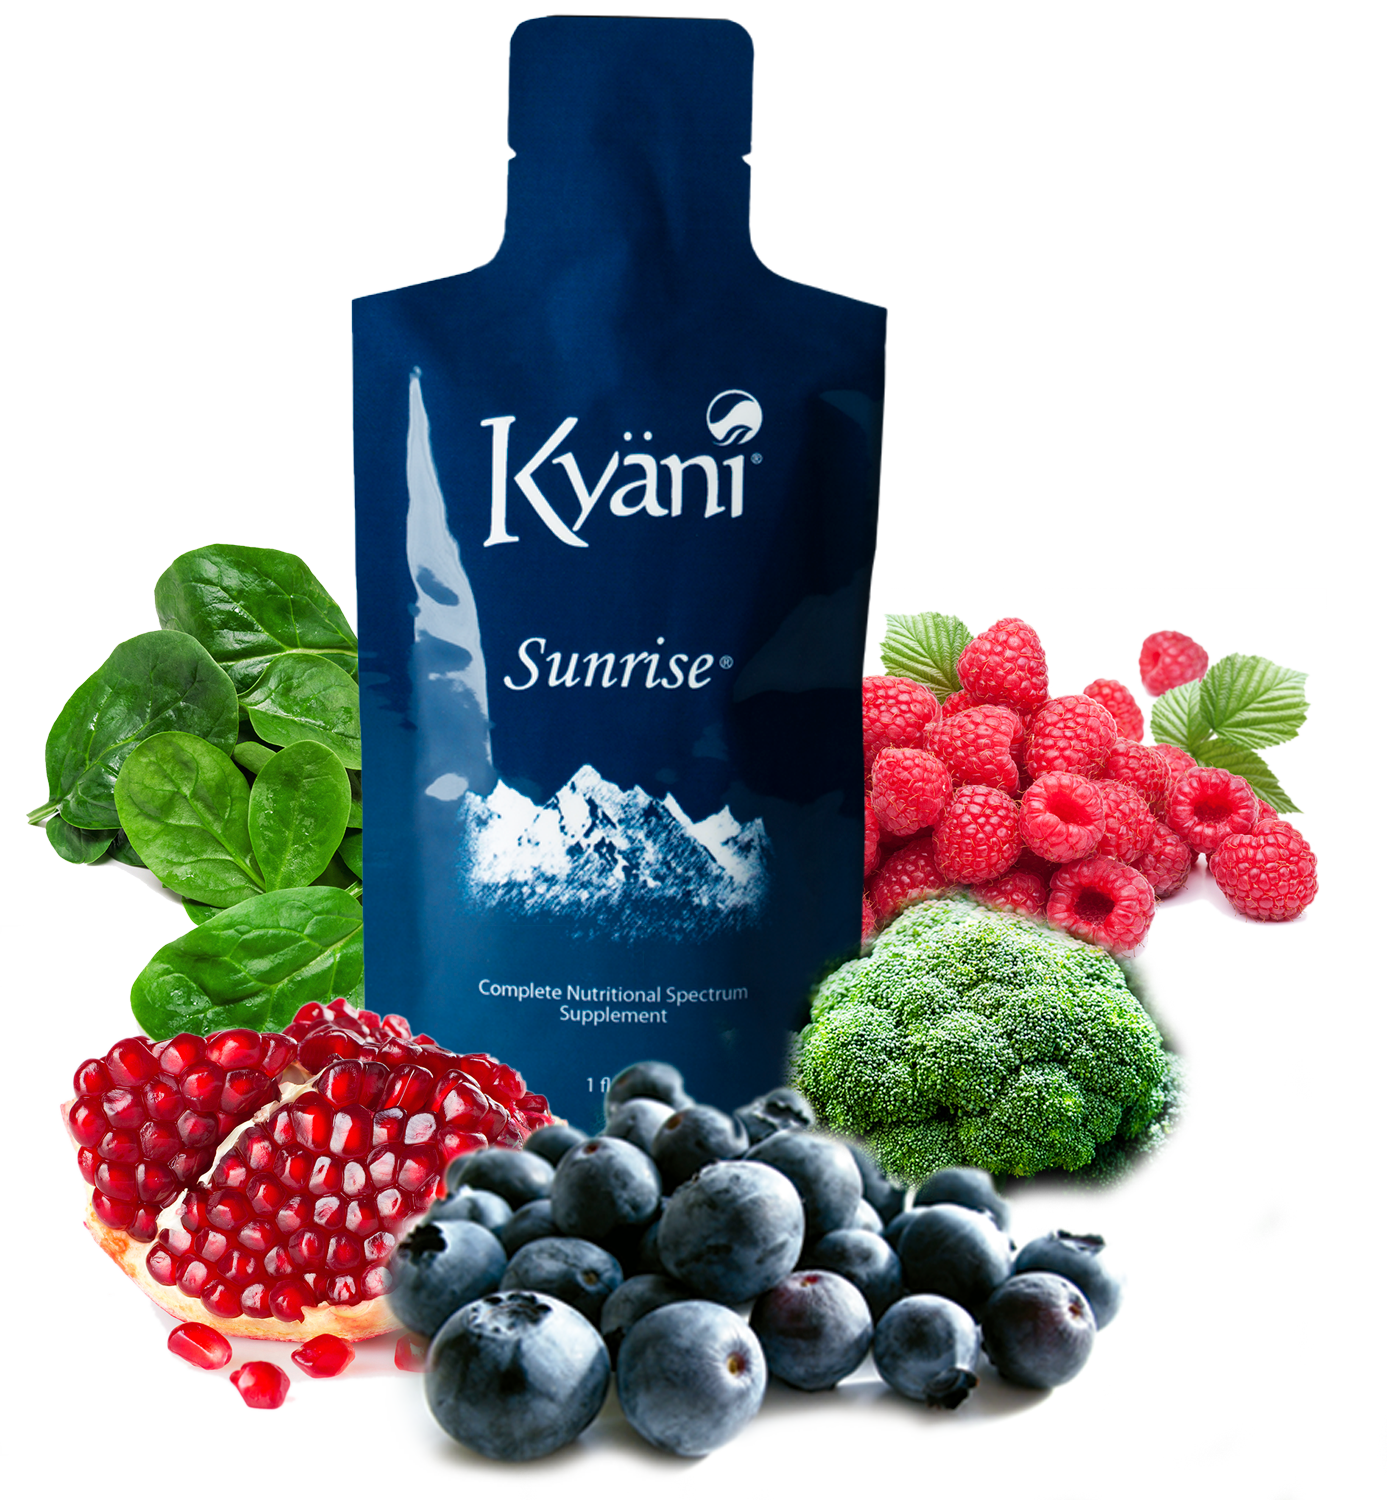 How to Drink Kyani Sunrise